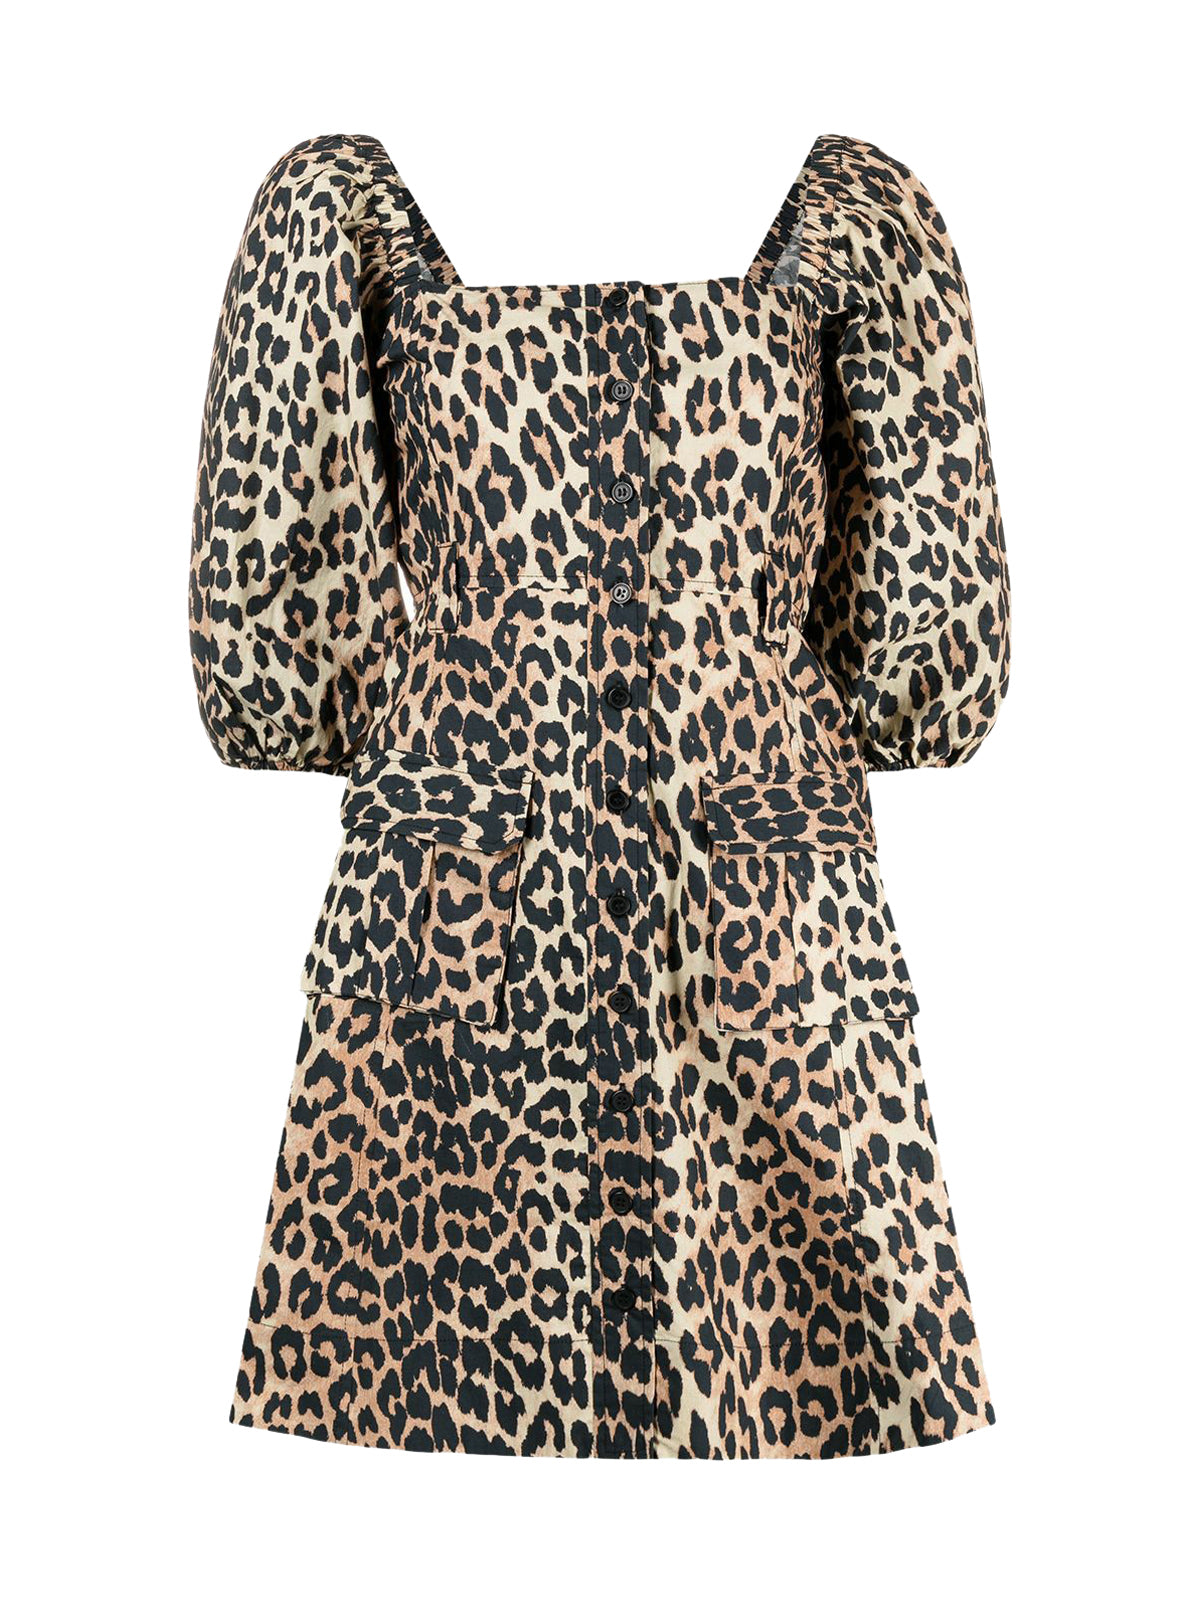 leopard-print puff-sleeve flared dress